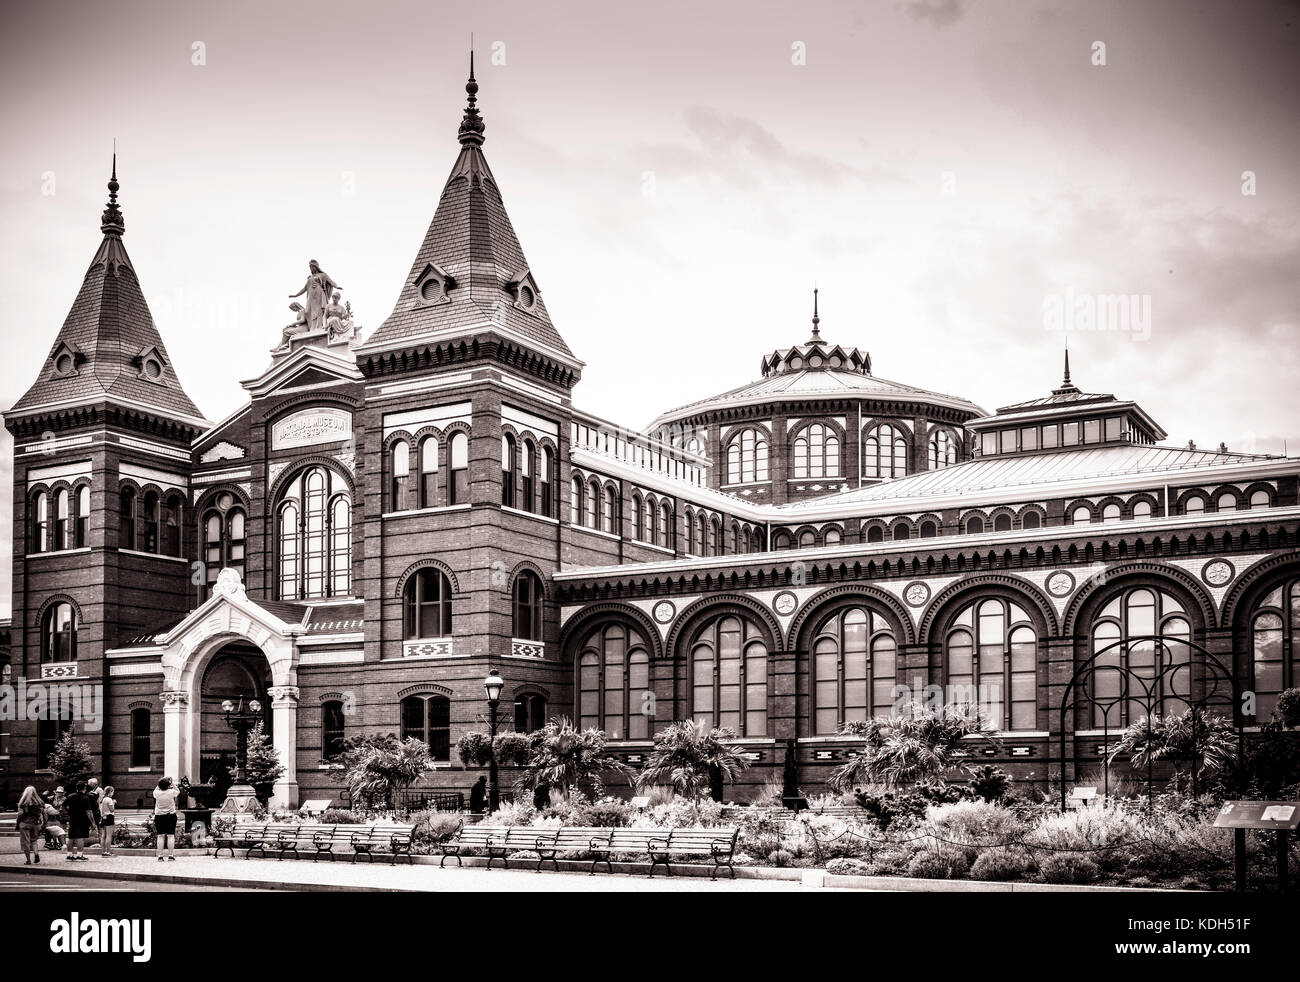 The Smithsonian's Arts and Industries building on the National Mall in Washington, DC, USA - Stock Image